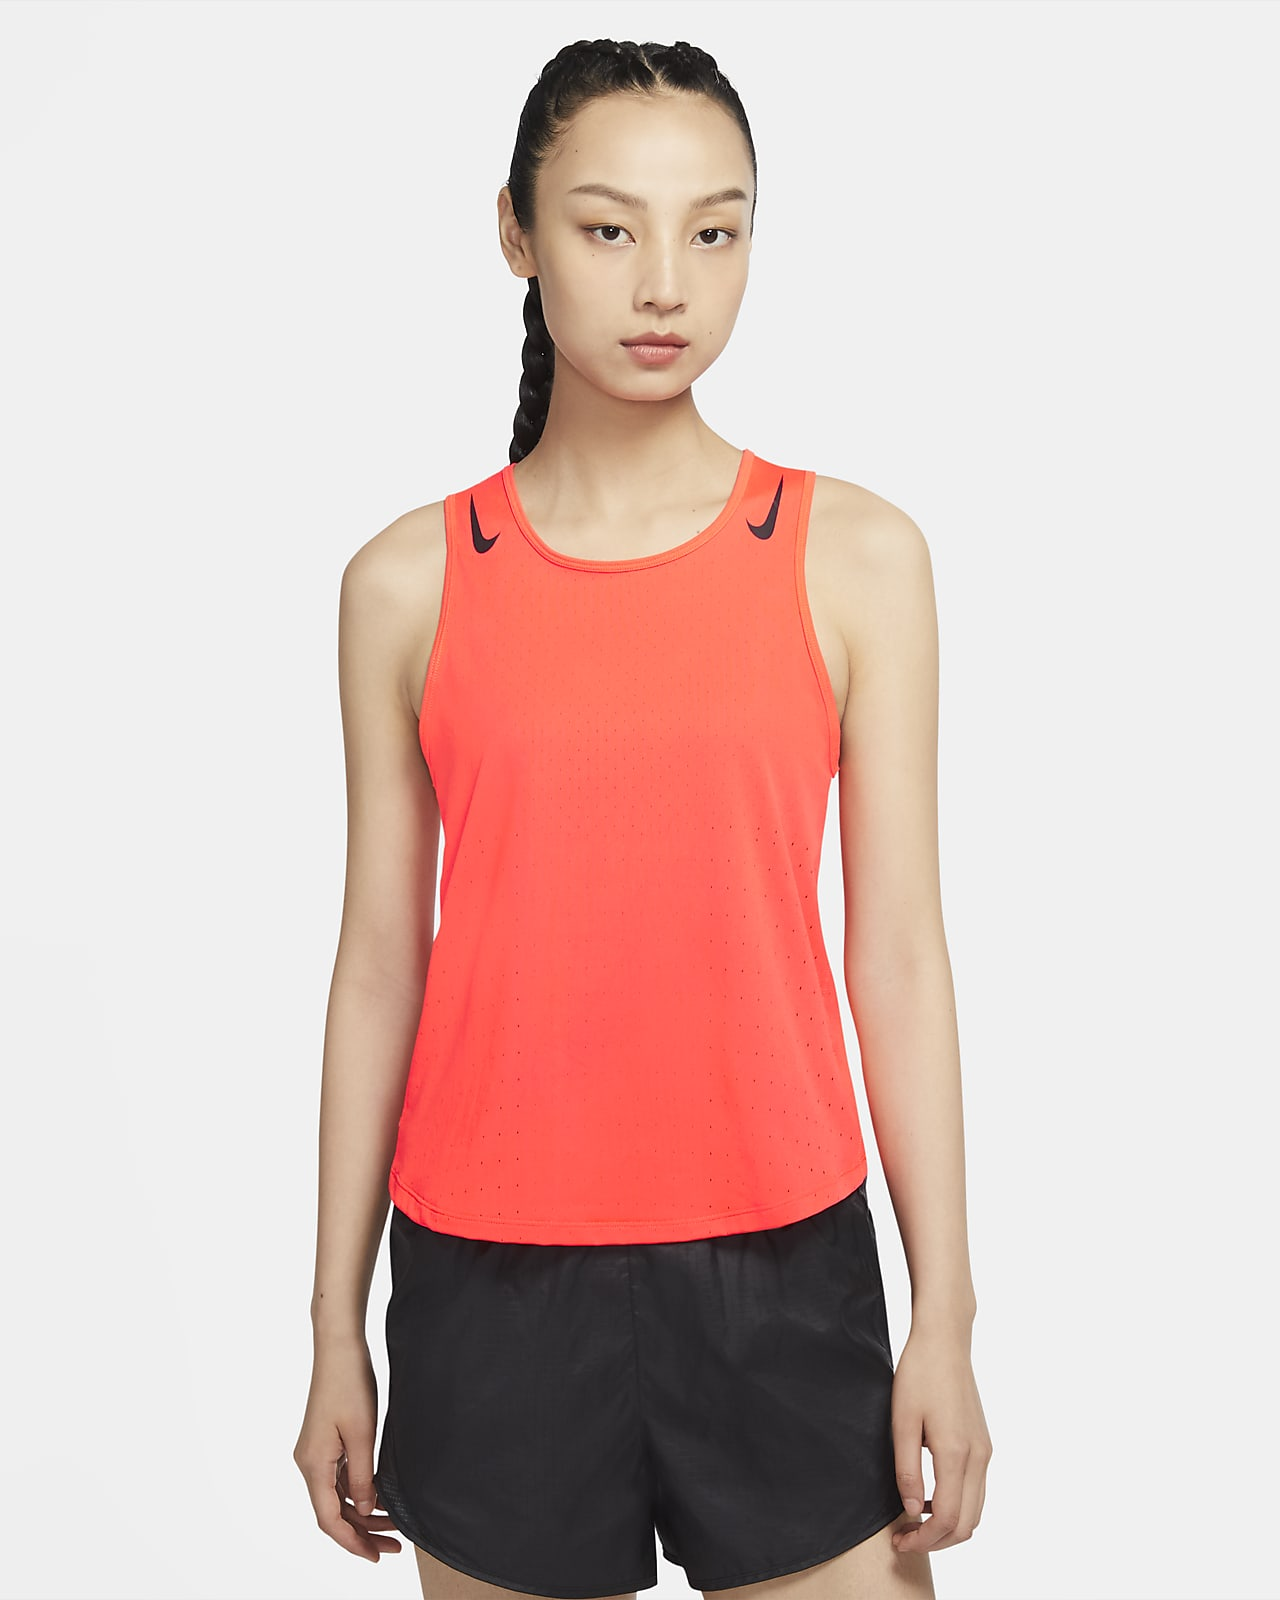 Nike AeroSwift Women's Running Gilet